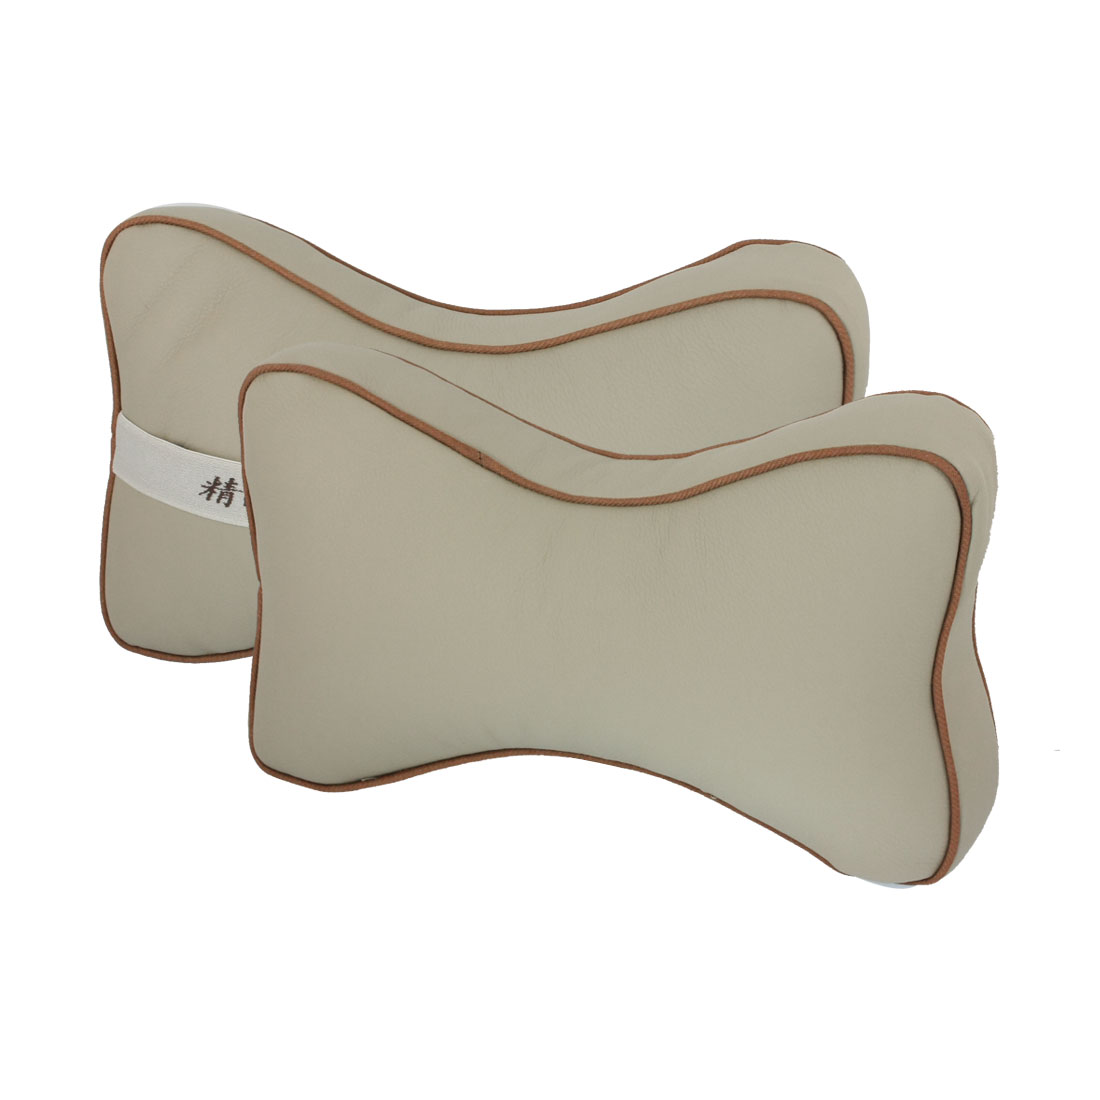 2 Pcs Auto Car Vehicle Faux Leather Bone Shape Head Neck Pillow Cushion Beige